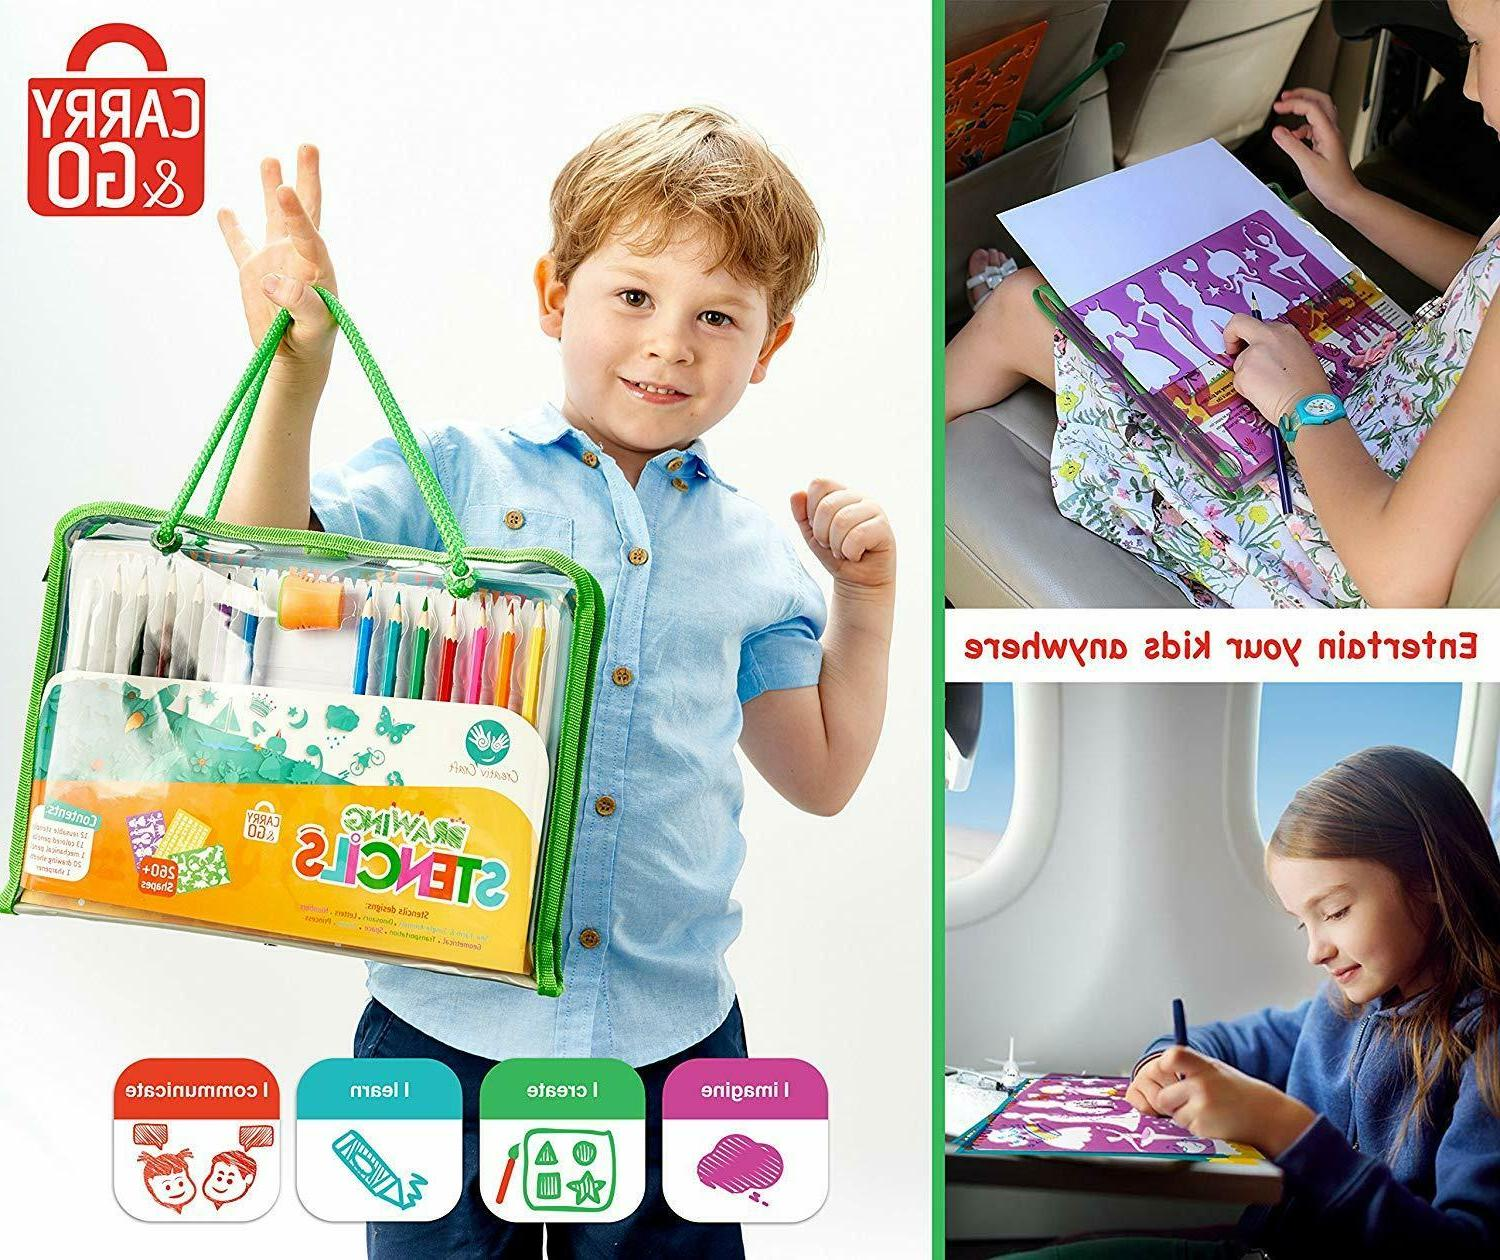 Drawing Stencils and Colored Pencils and Crafts Set, D